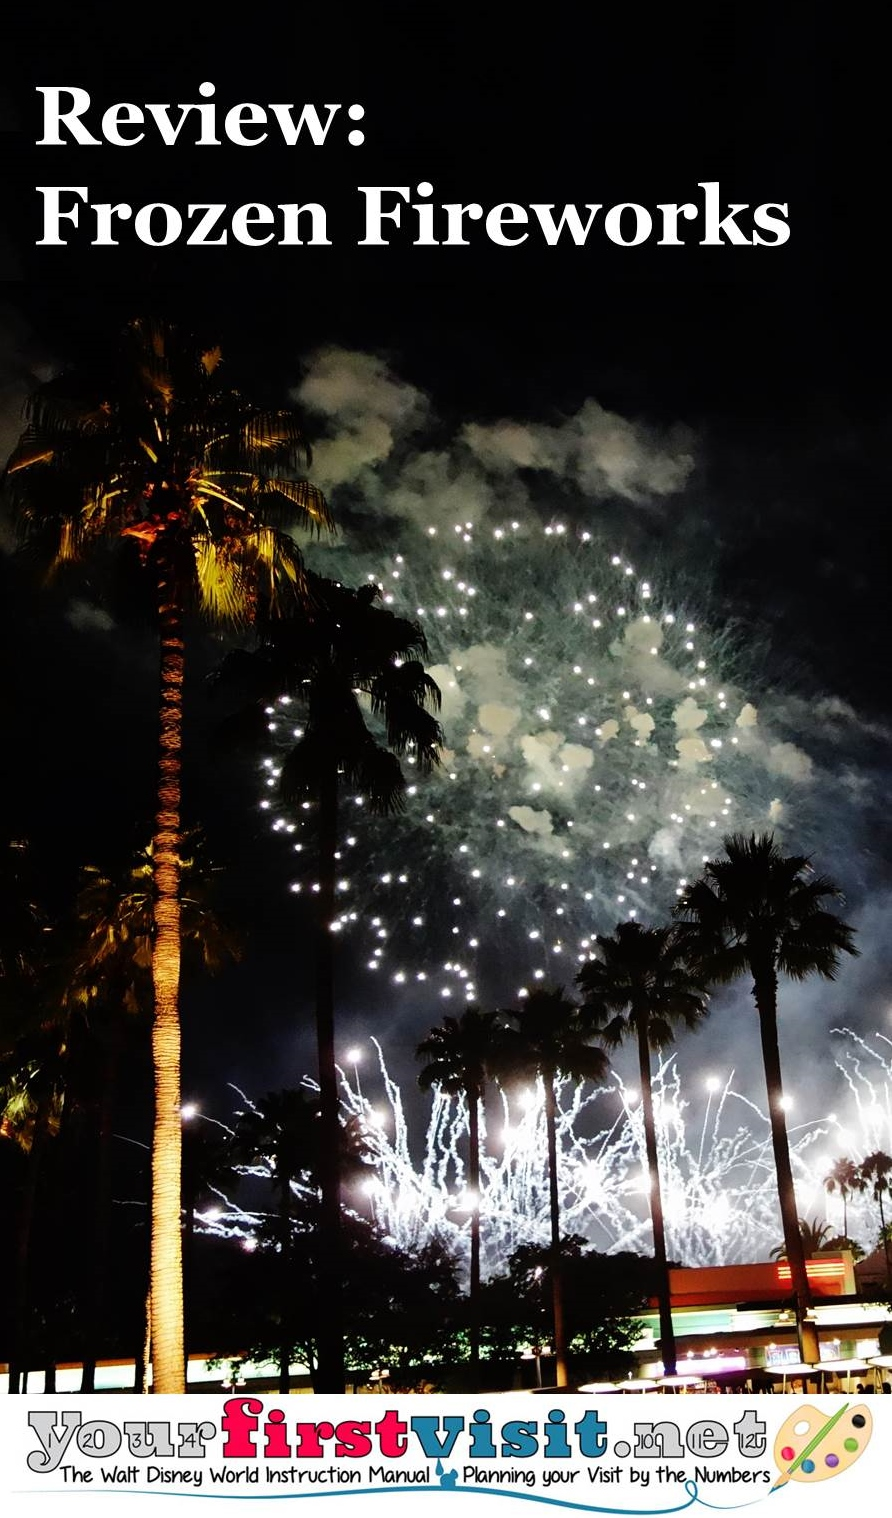 Review - Frozen Fireworks at Disney's Hollywood Studios